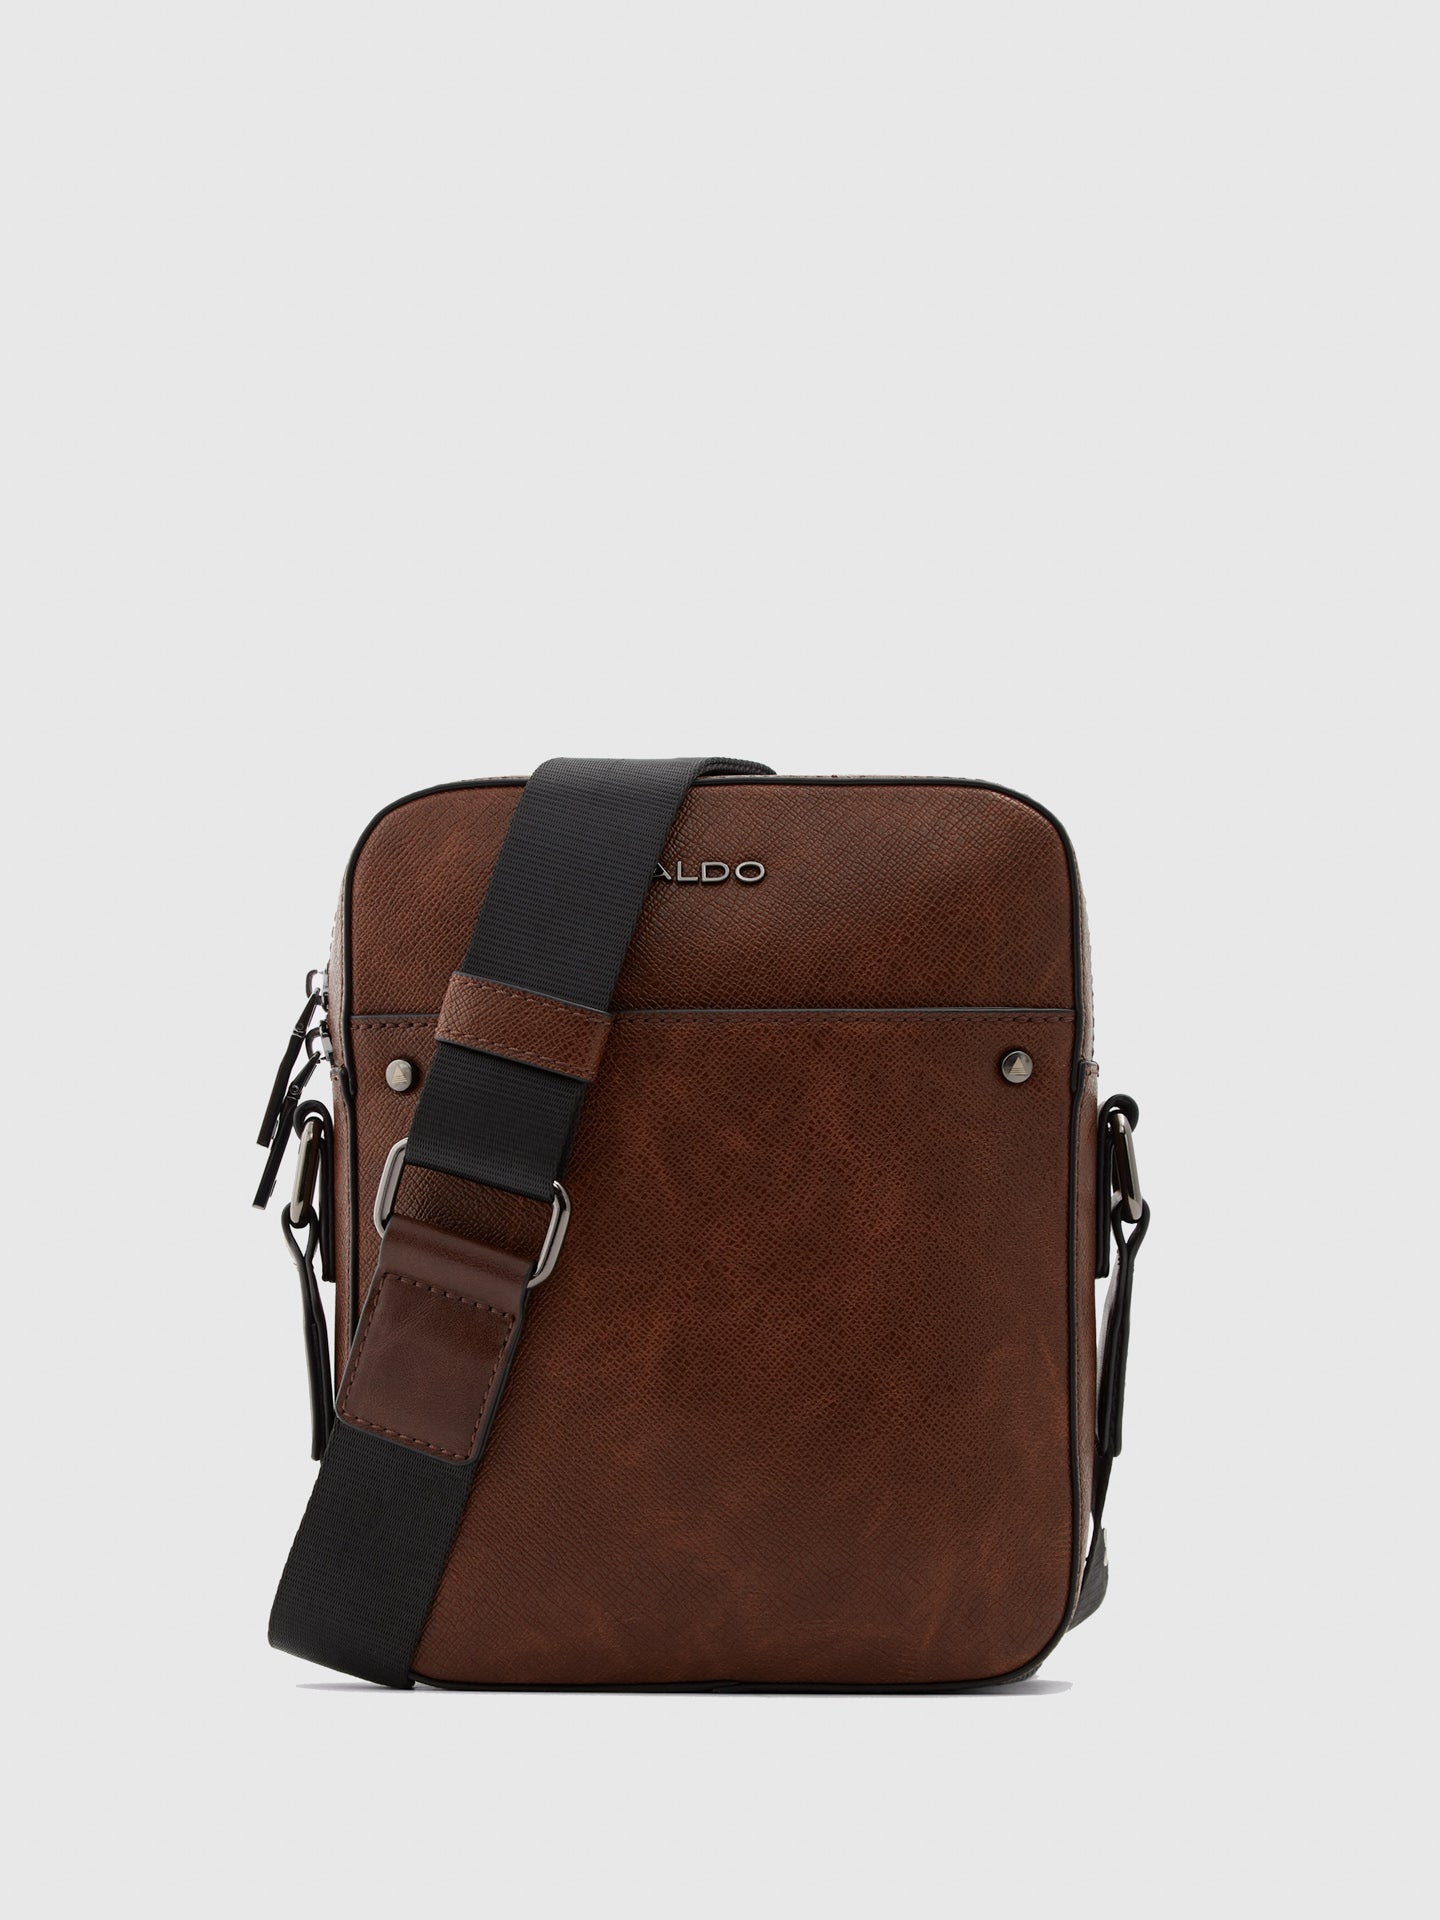 Aldo Brown Crossbody Bag